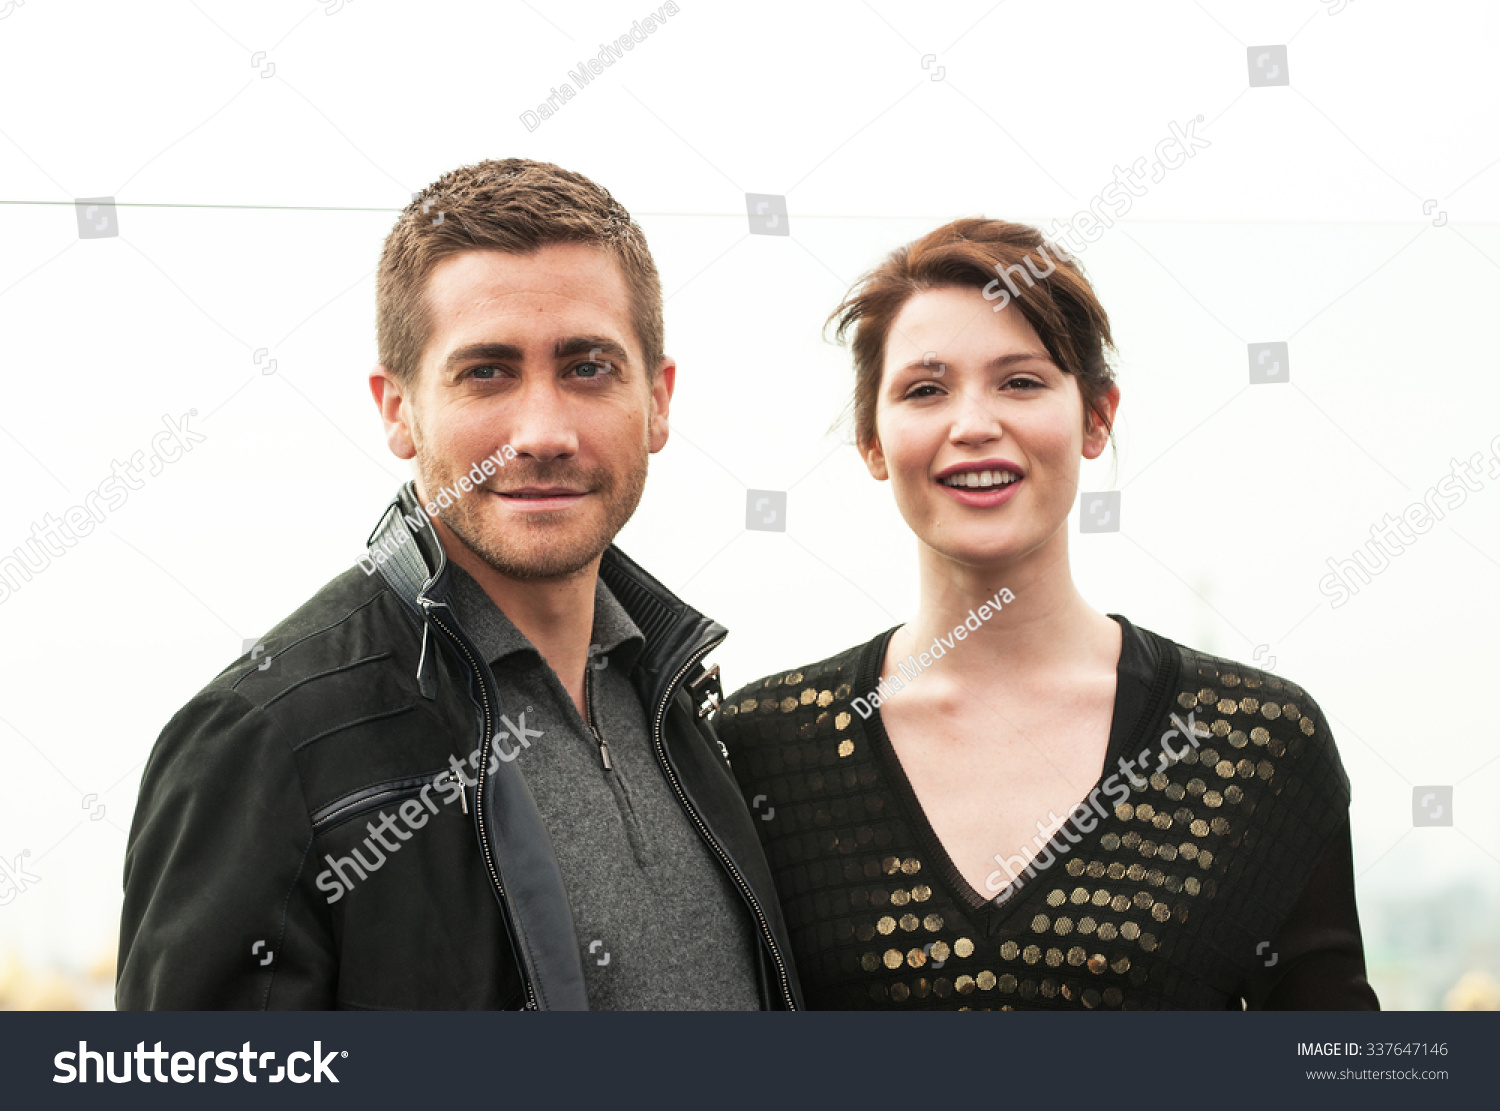 MOSCOW, RUSSIA - MAY 11, 2010: Photocall on the roof of Ritz-Carlton hotel.  Jake Gyllenhaal and Gemma Arterton on the Prince of Persia, The Sands of  Time ...